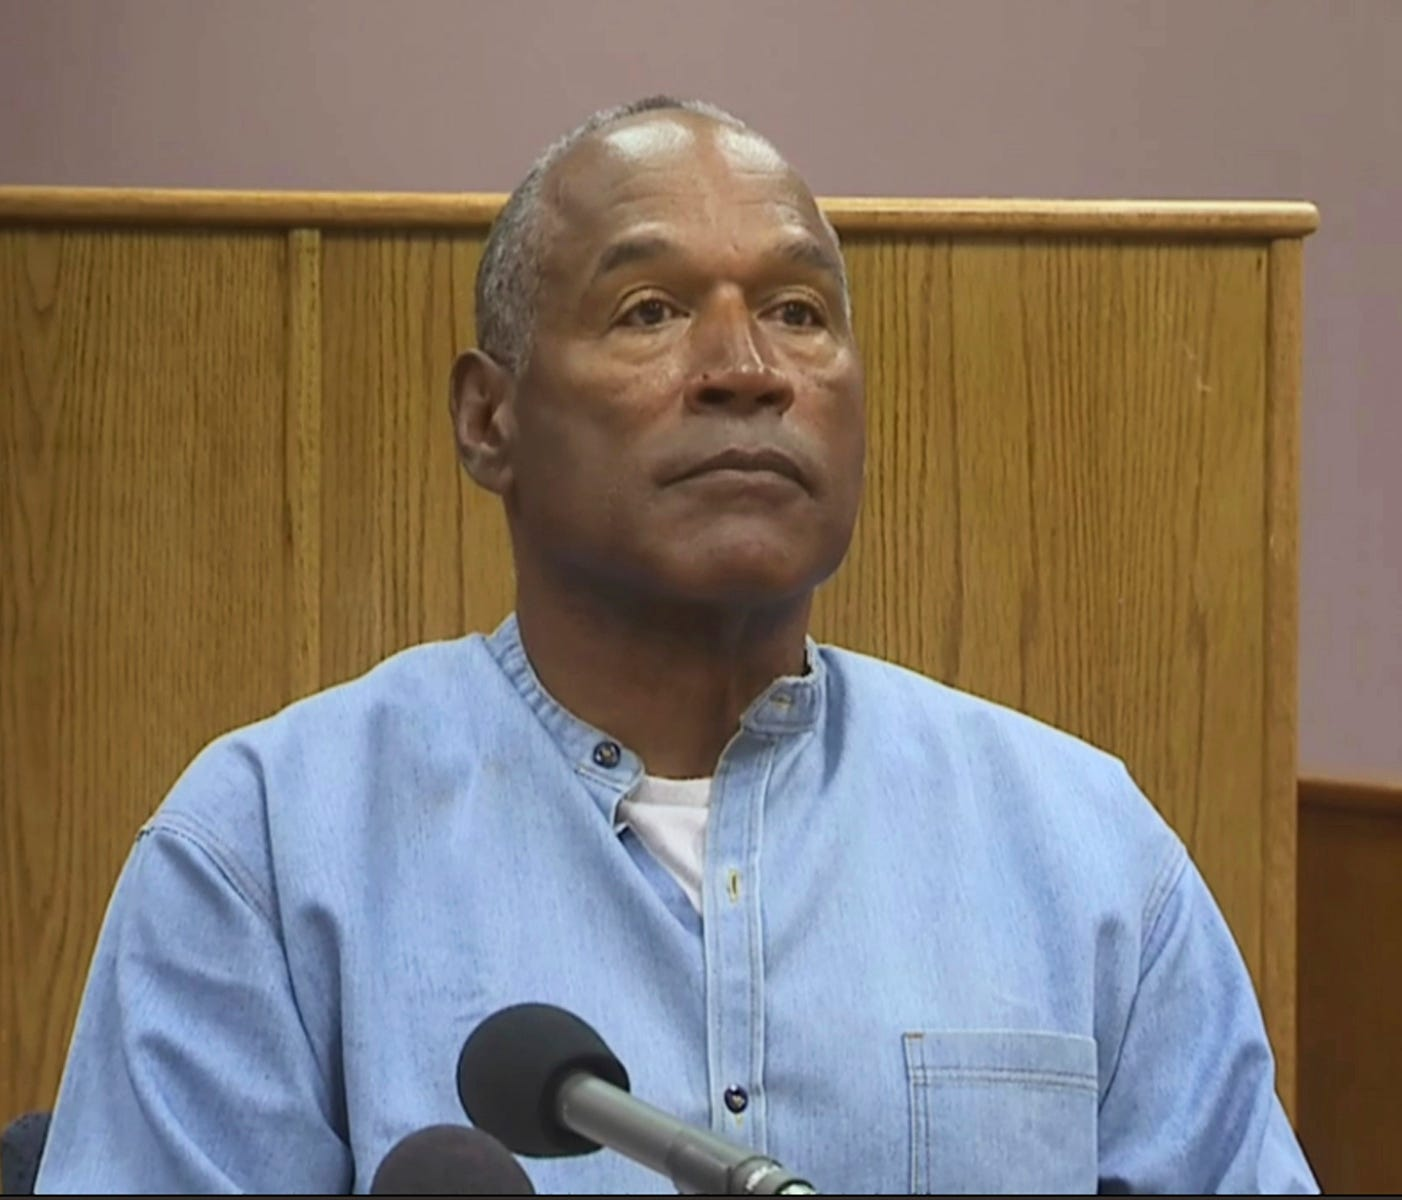 Former NFL football star O.J. Simpson appears via video for his parole hearing at the Lovelock Correctional Center in Lovelock, Nev., on Thursday, July 20, 2017.  Simpson was convicted in 2008 of enlisting some men he barely knew, including two who h